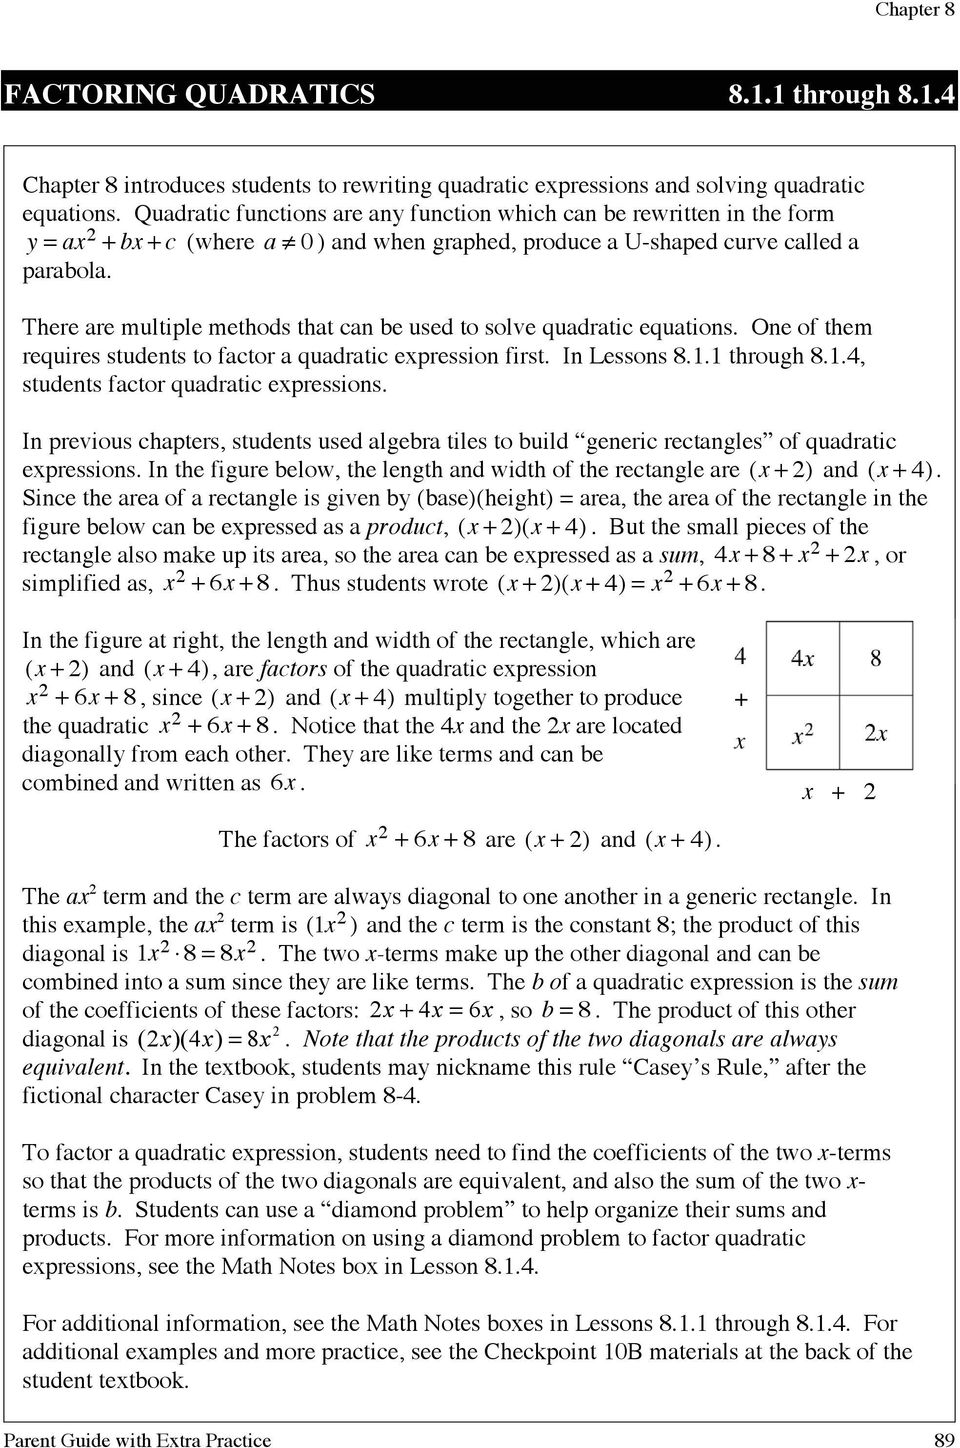 There are multiple methods that can be used to solve quadratic equations. One of them requires students to factor a quadratic epression first. In Lessons 8.. through 8.